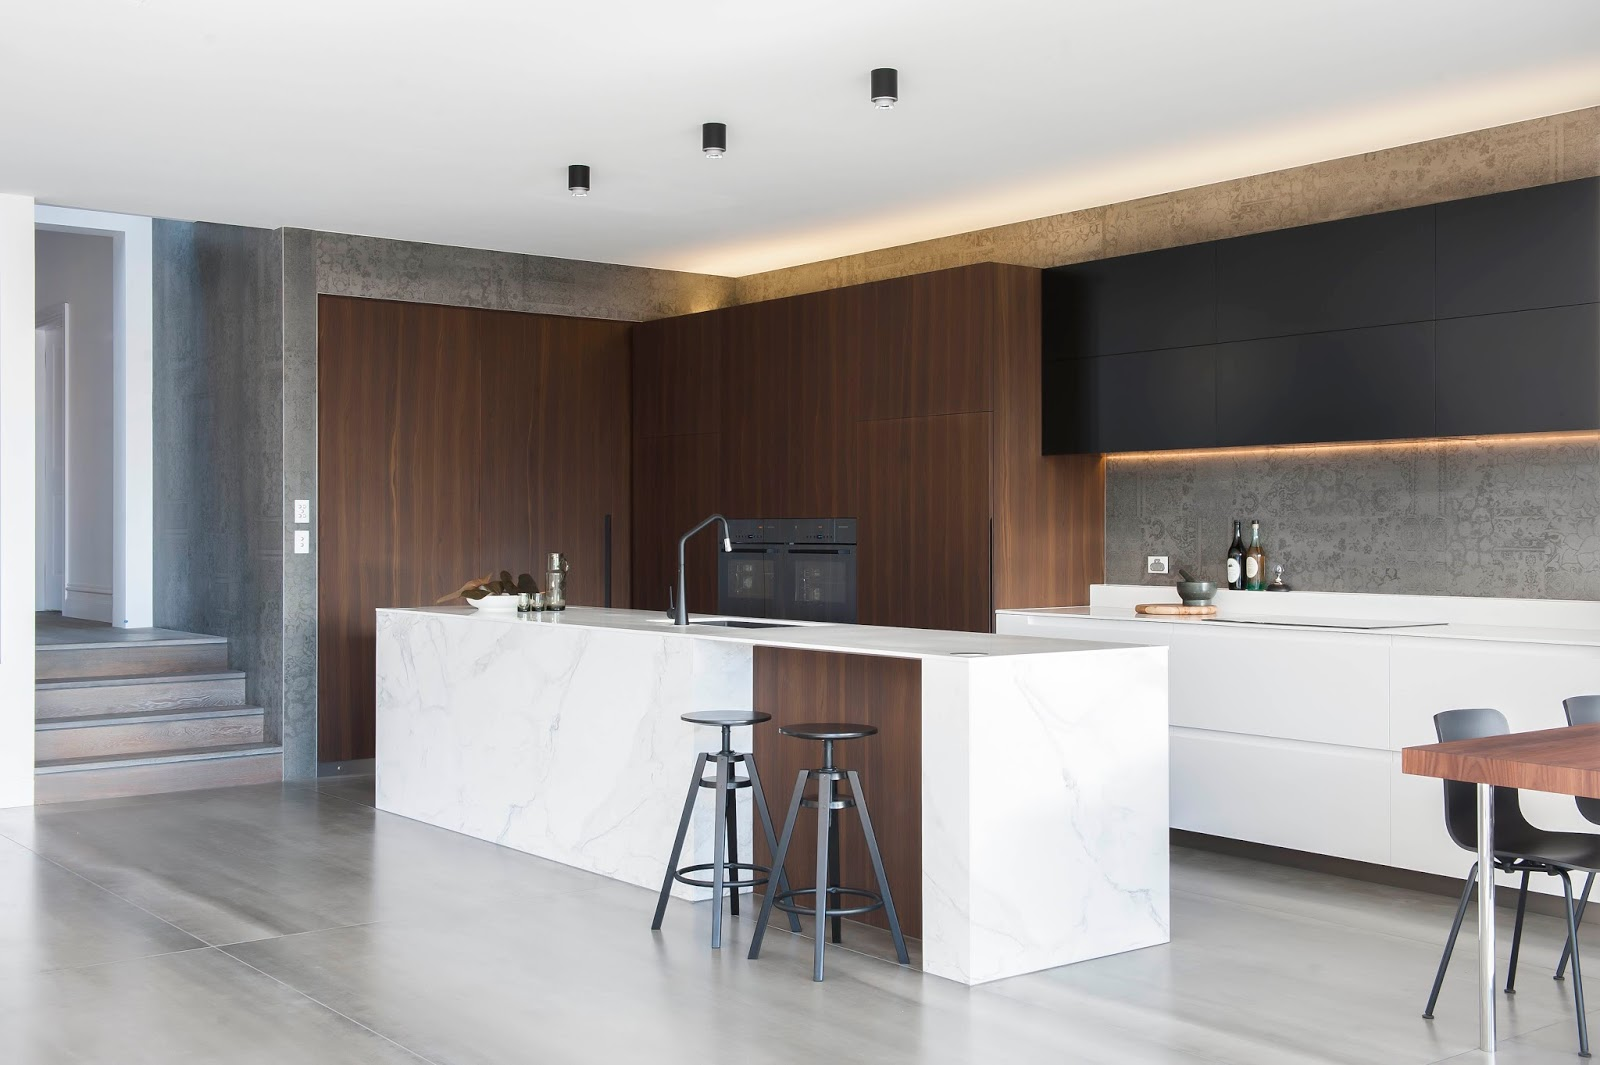 Read More About This Award Winning Kitchen Design HERE